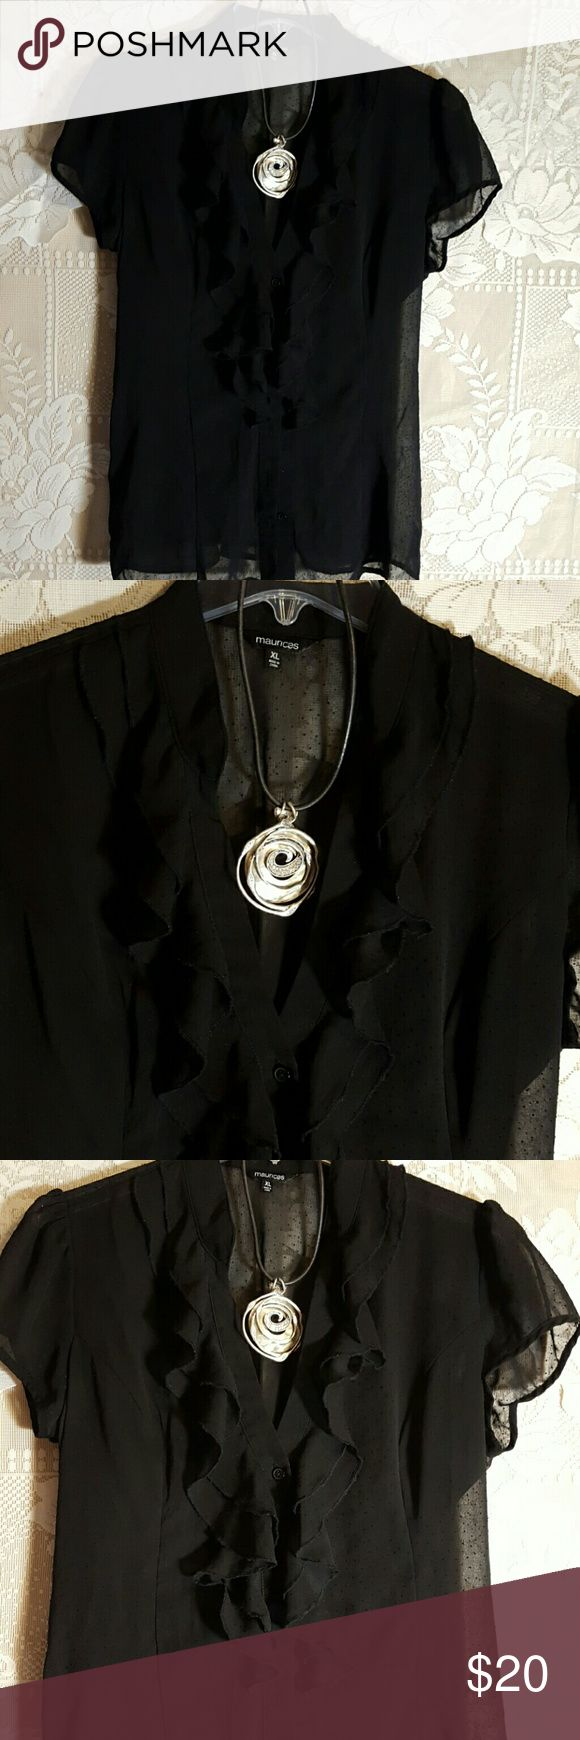 2 piece Bundle XL black Poet Blouse & necklace Beautiful black polkadot sheer blouse and silver choker Maurices Tops Blouses